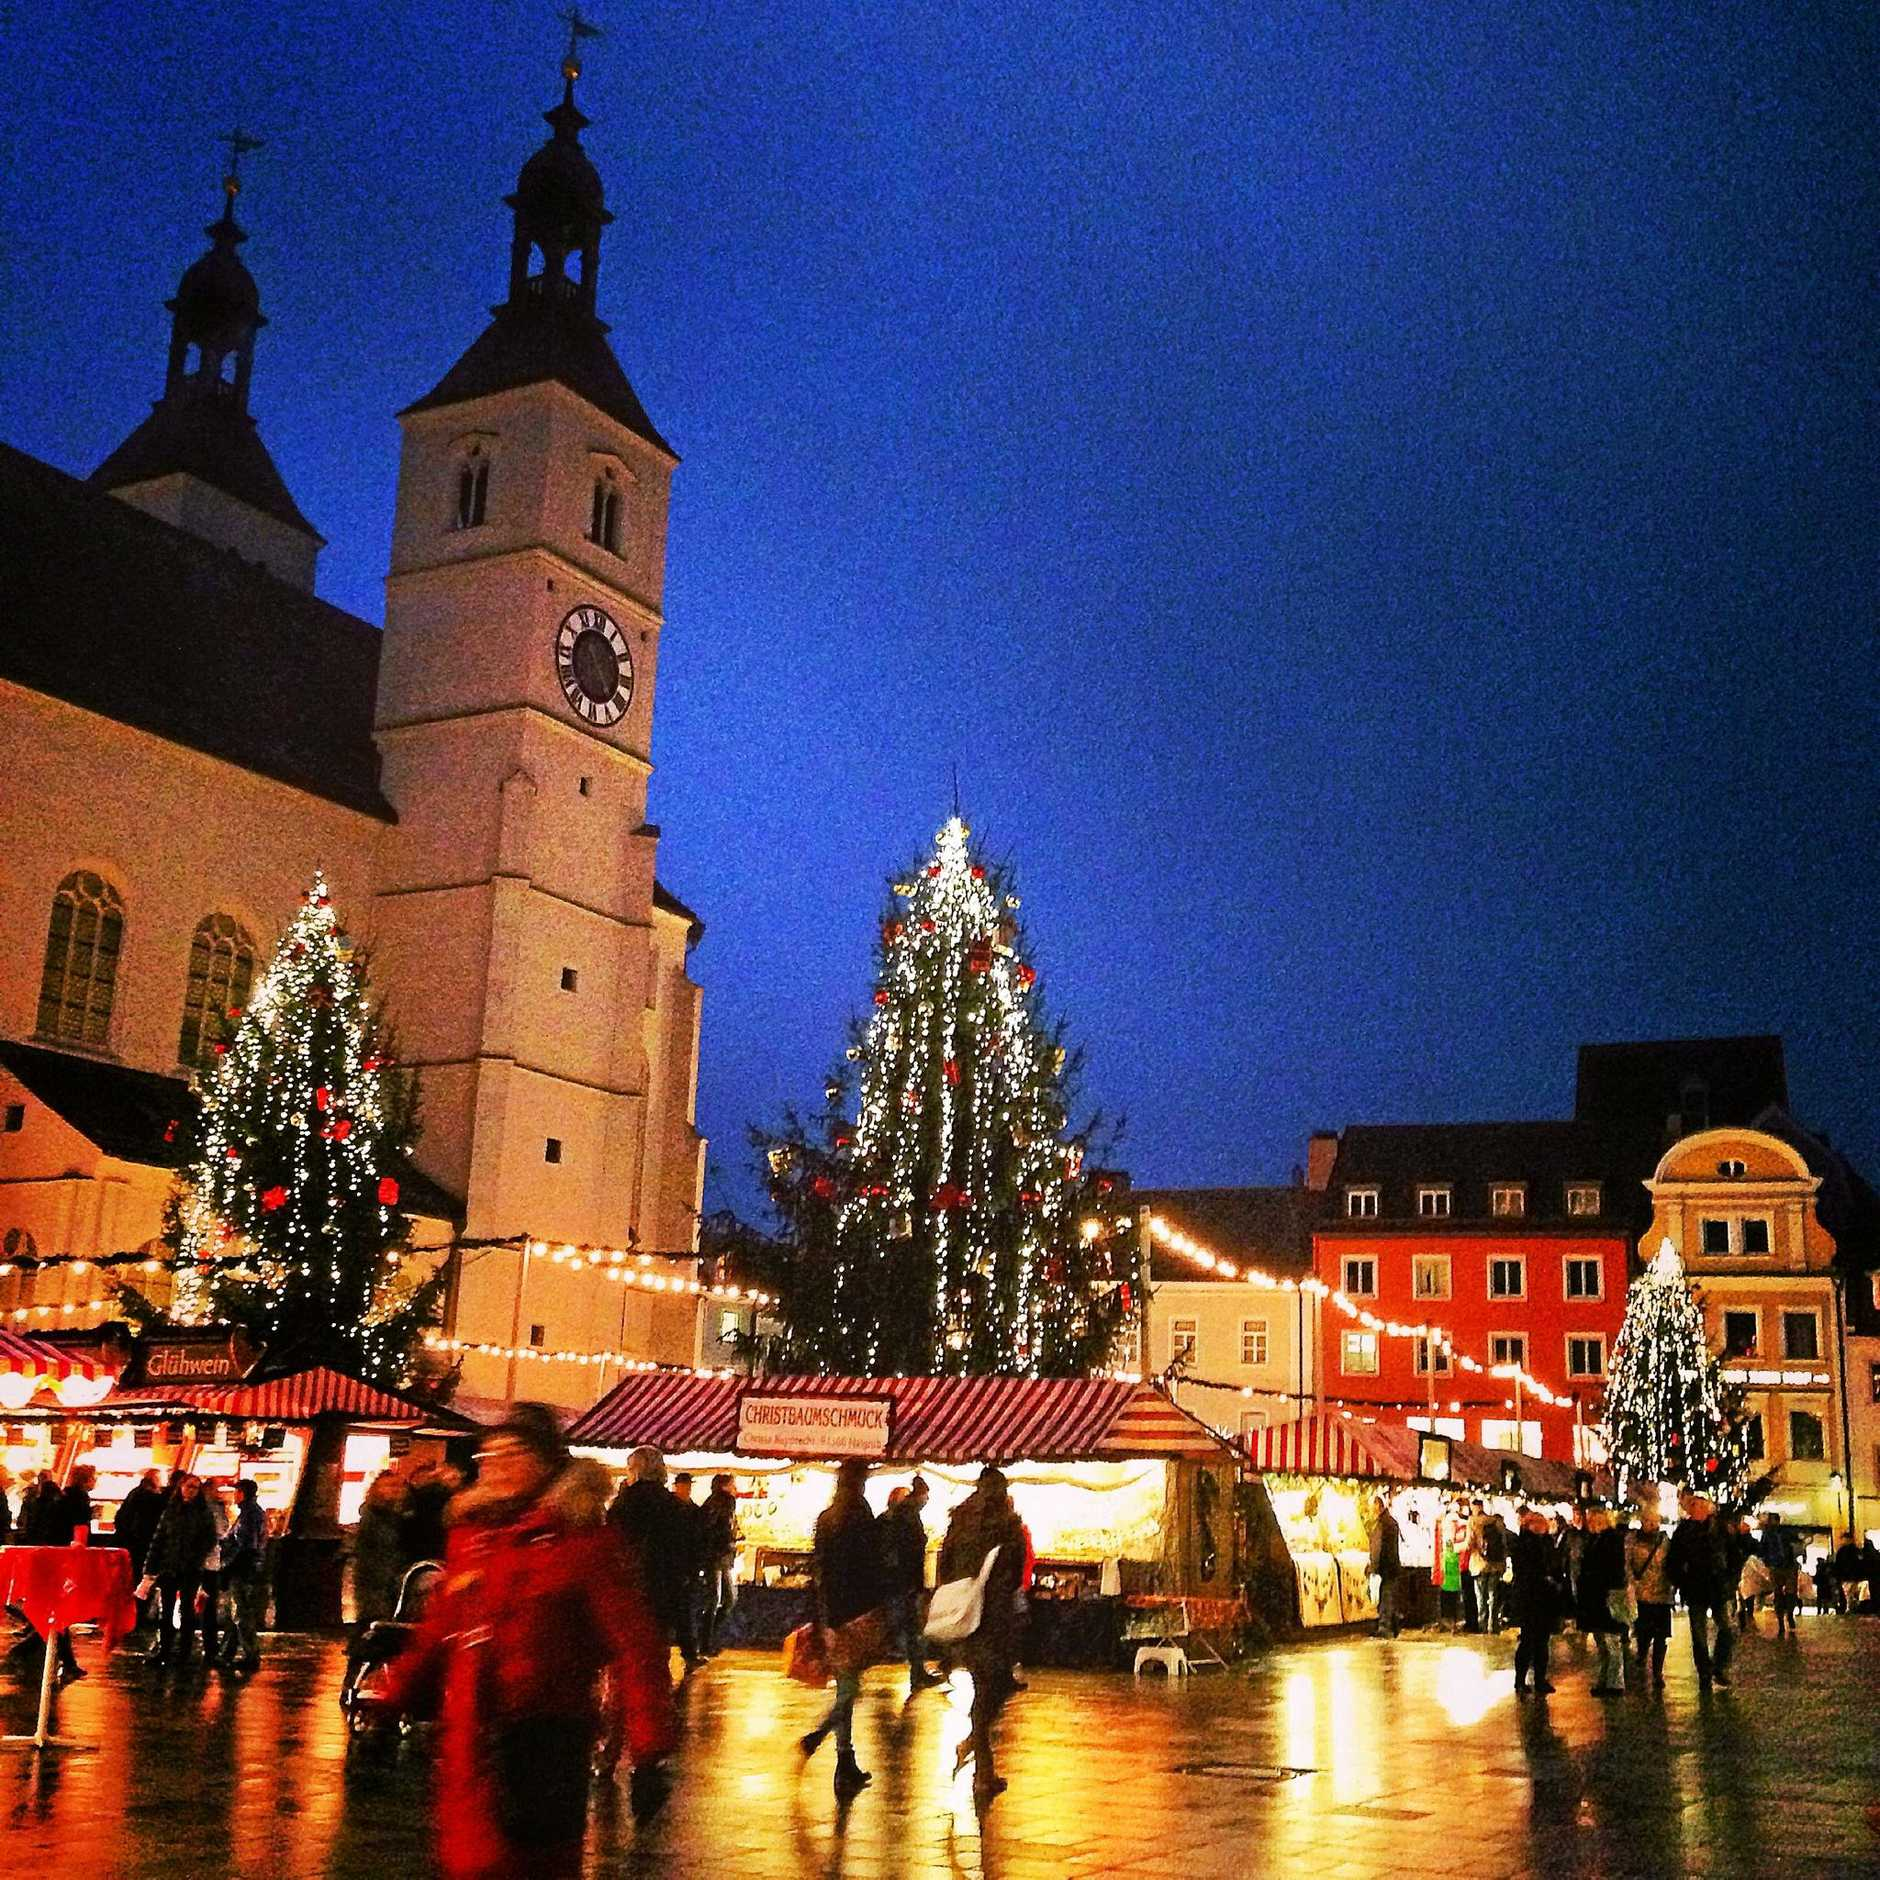 Regensburg's Christmas Market is worth a visit at night.